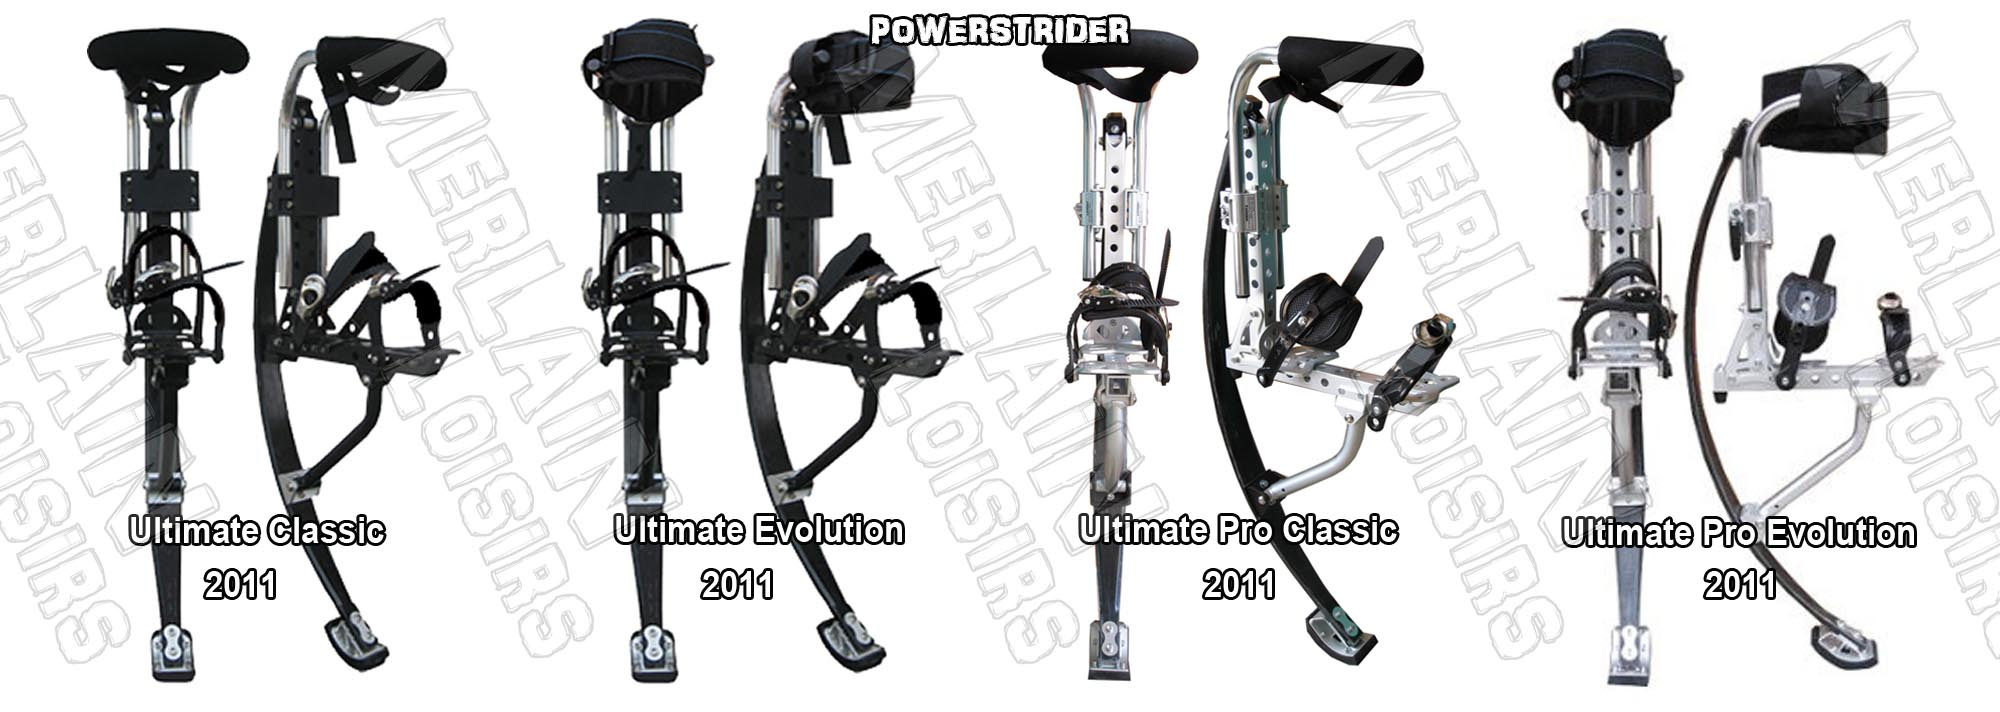 powerstrider adulte ultimate classic evolution pro 2011